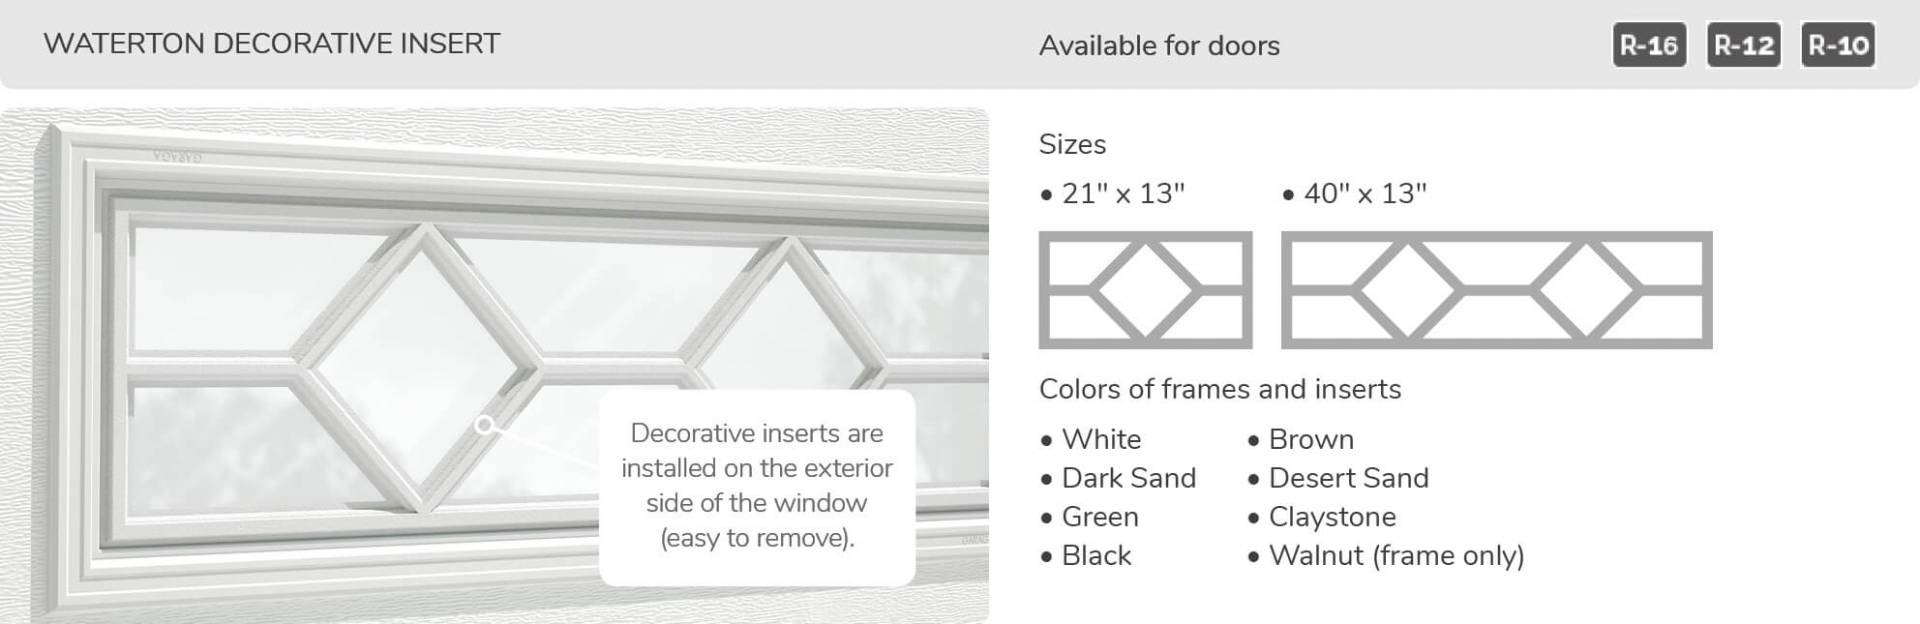 Waterton Decorative Insert, 21' x 13' and 40' x 13', available for doors R-16, R-12 and R-10